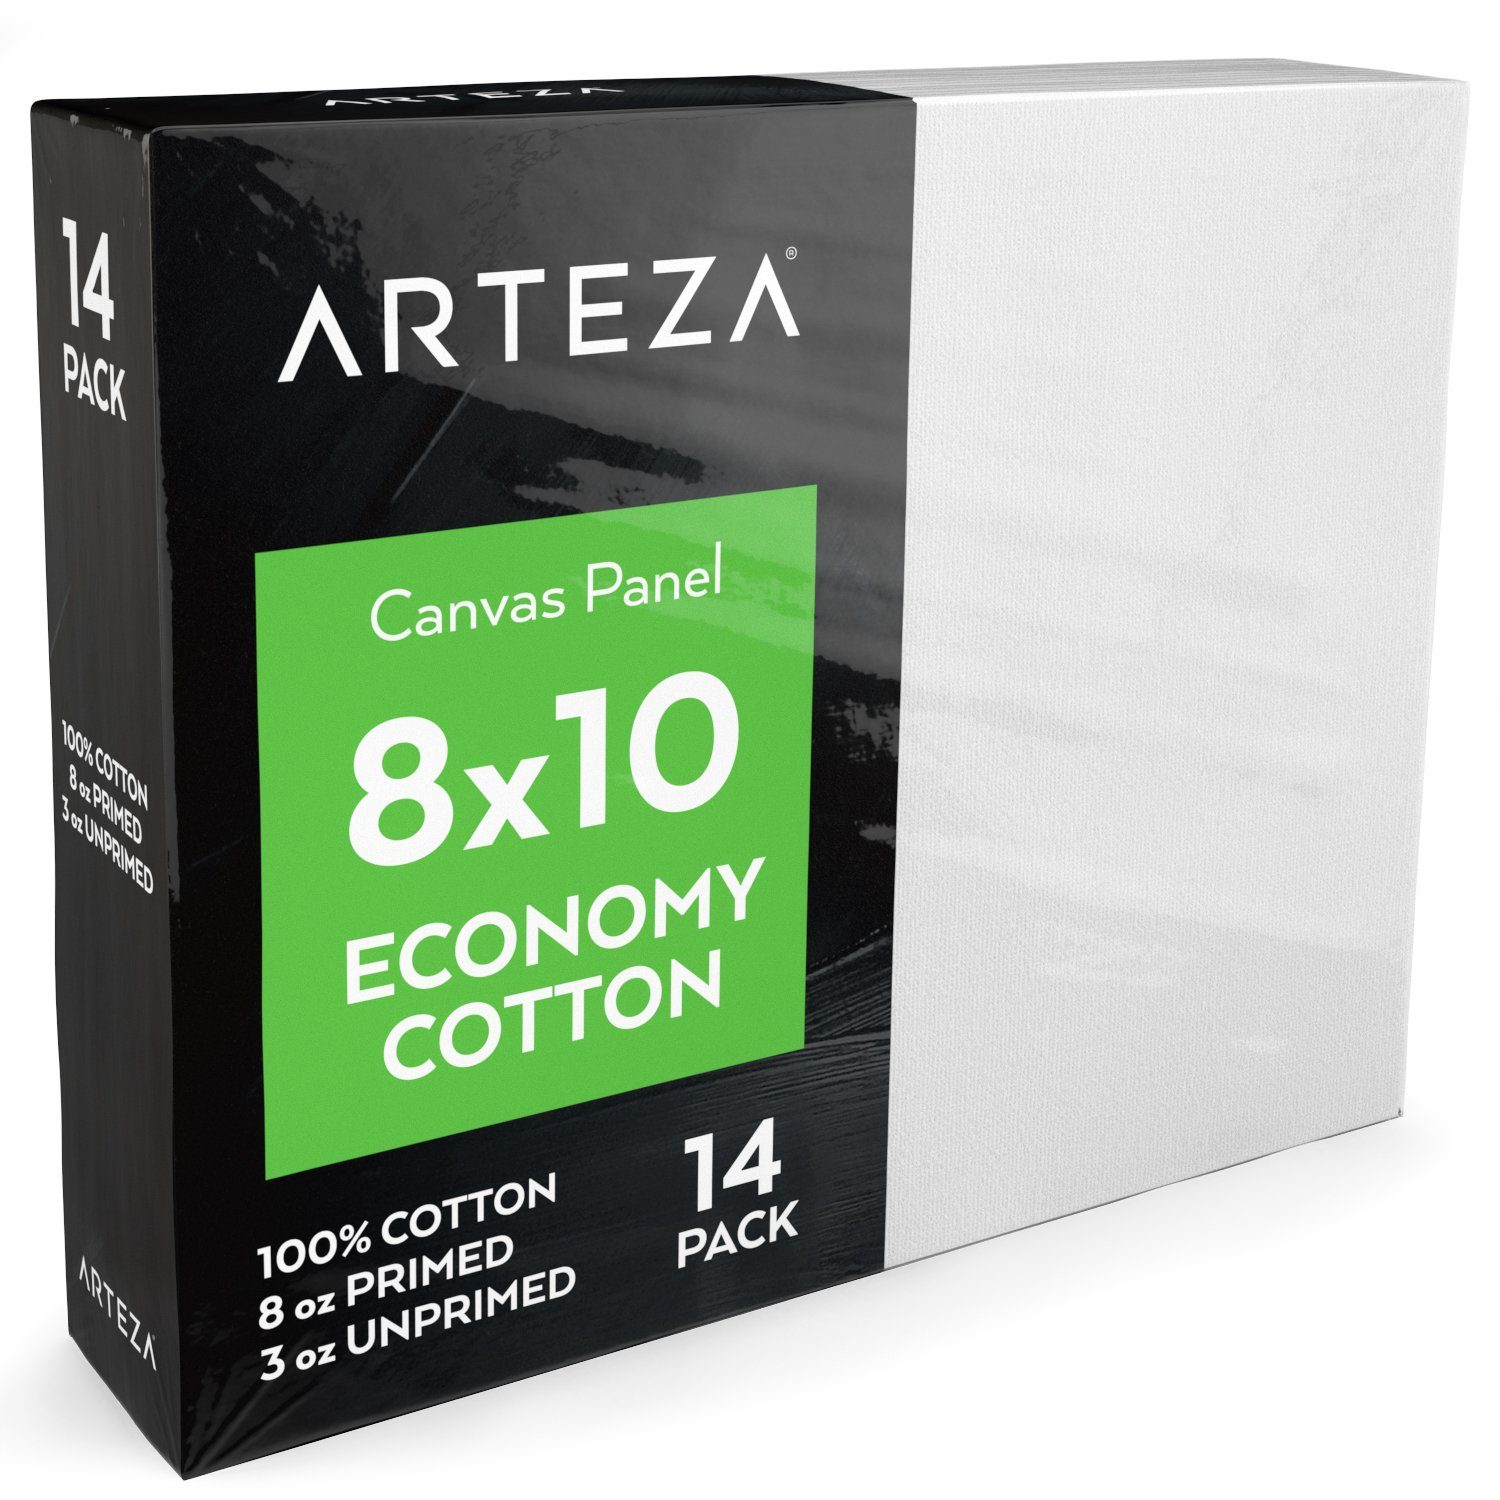 Arteza Painting Canvas Panels, 8x10, Set of 14, Primed White, 100% Cotton with Recycled Board Core, for Acrylic, Oil, Other Wet or Dry Art Media, for Artists, Hobby Painters, Kids by ARTEZA